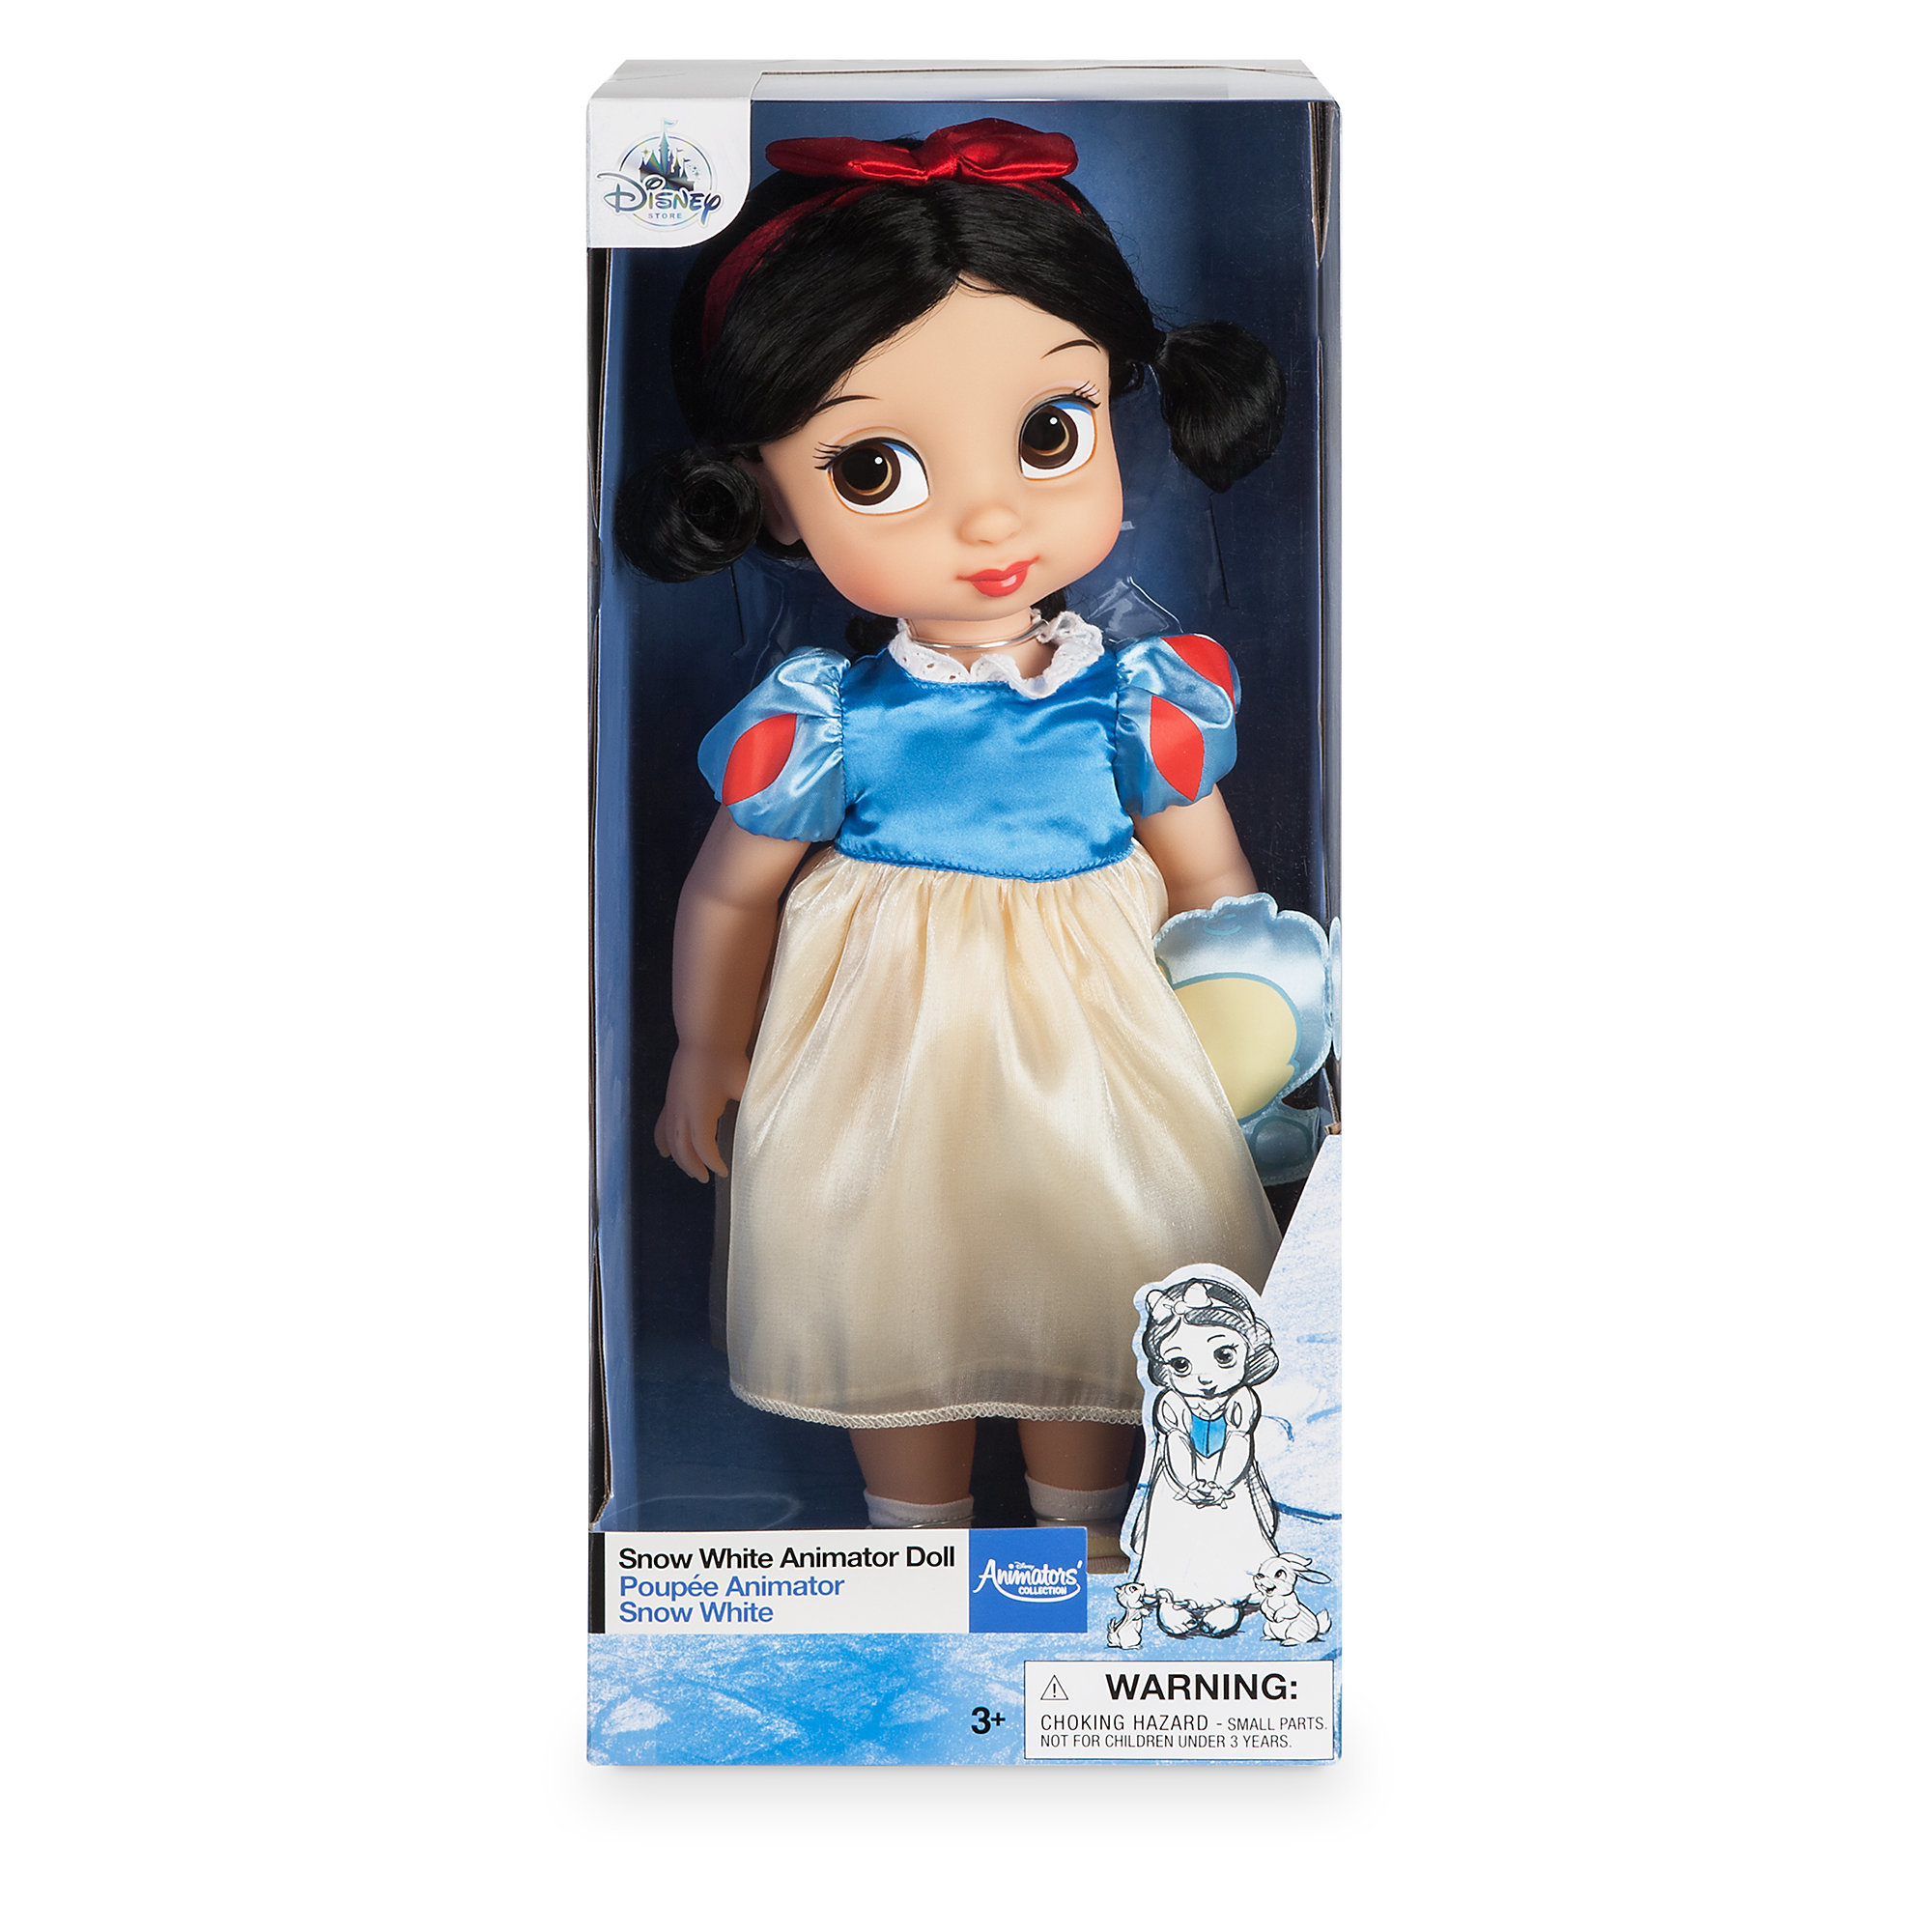 Disney Princess Animators' Collection Snow White Doll